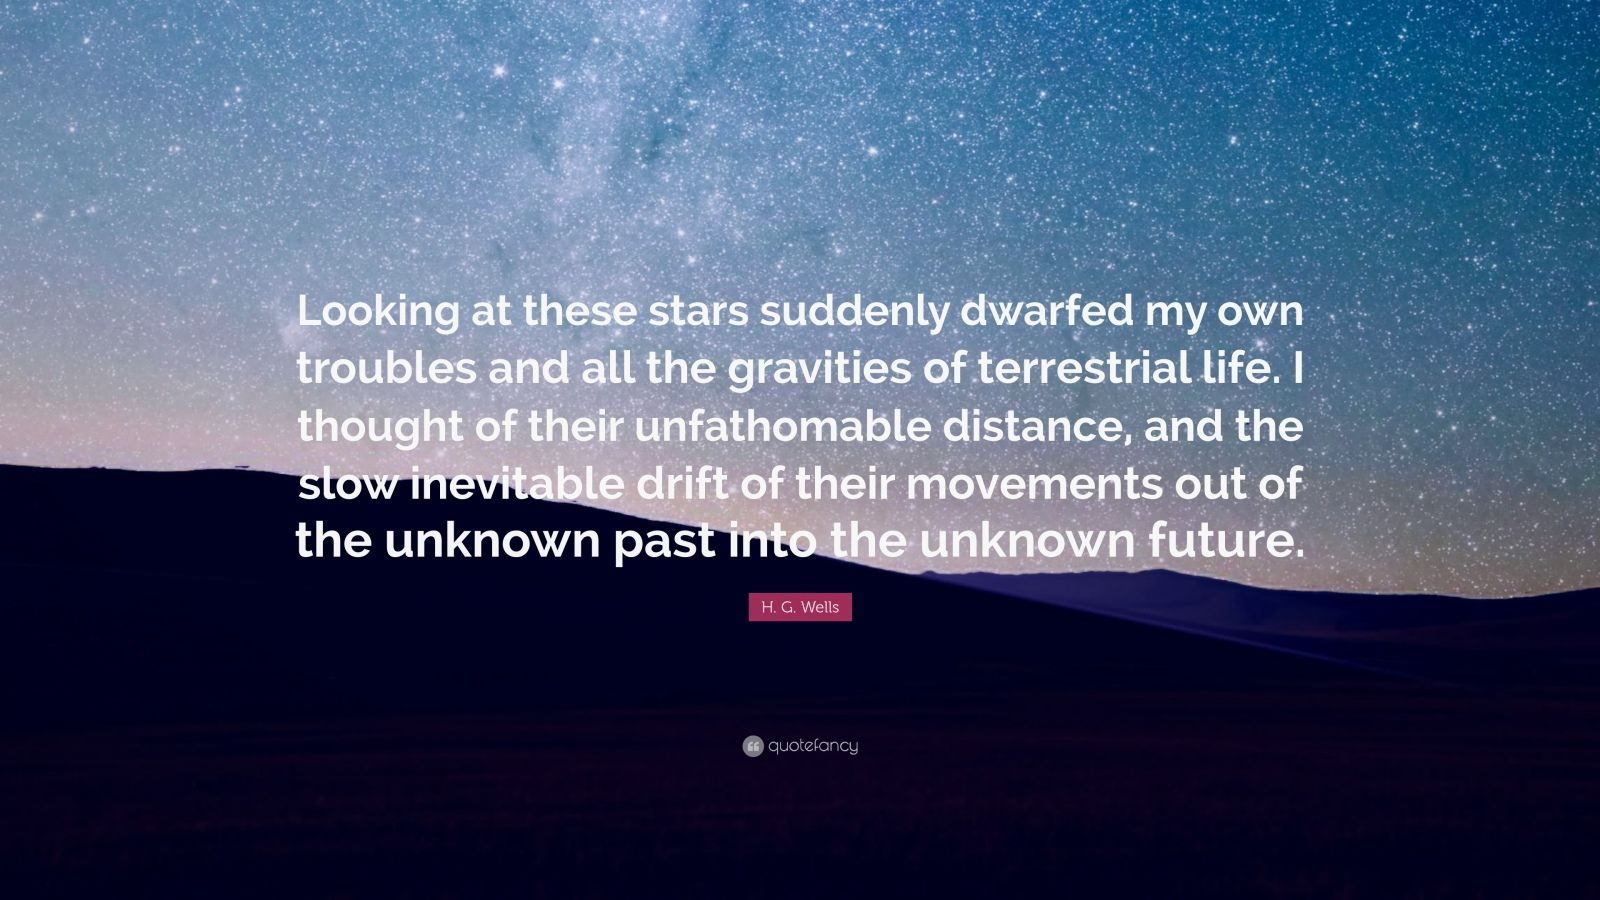 "H. G. Wells Quote: ""Looking at these stars suddenly dwarfed my own troubles and all the gravities of terrestrial life. I thought of their unfathomable distance, and the slow inevitable drift of their movements out of the unknown past into the unknown future."""